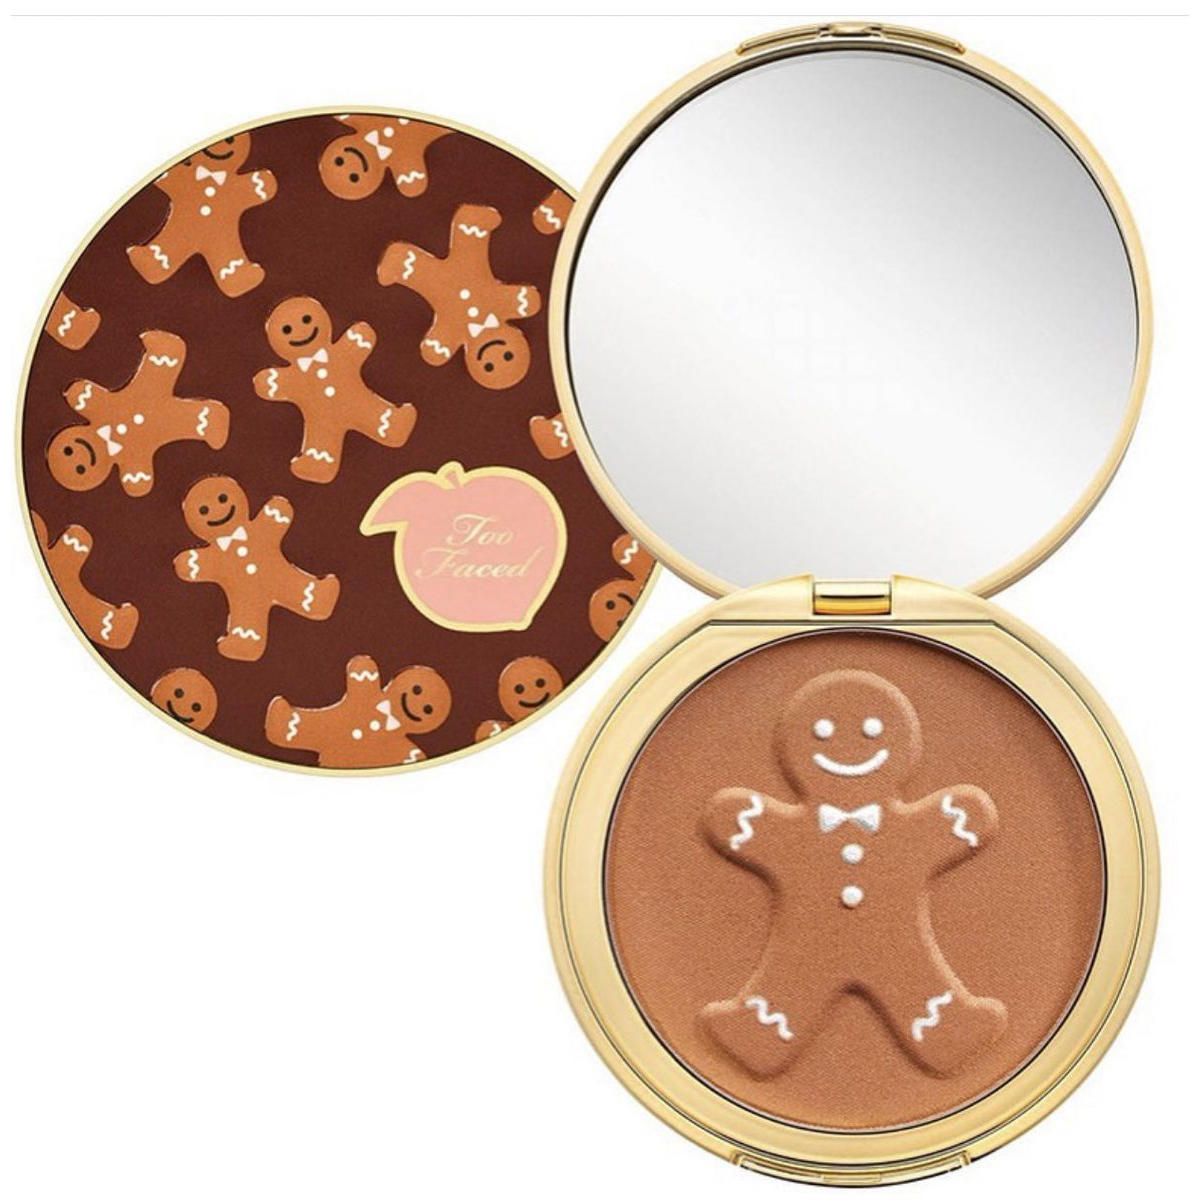 Too Faced Spicy Bronzer Gingerbread Tan